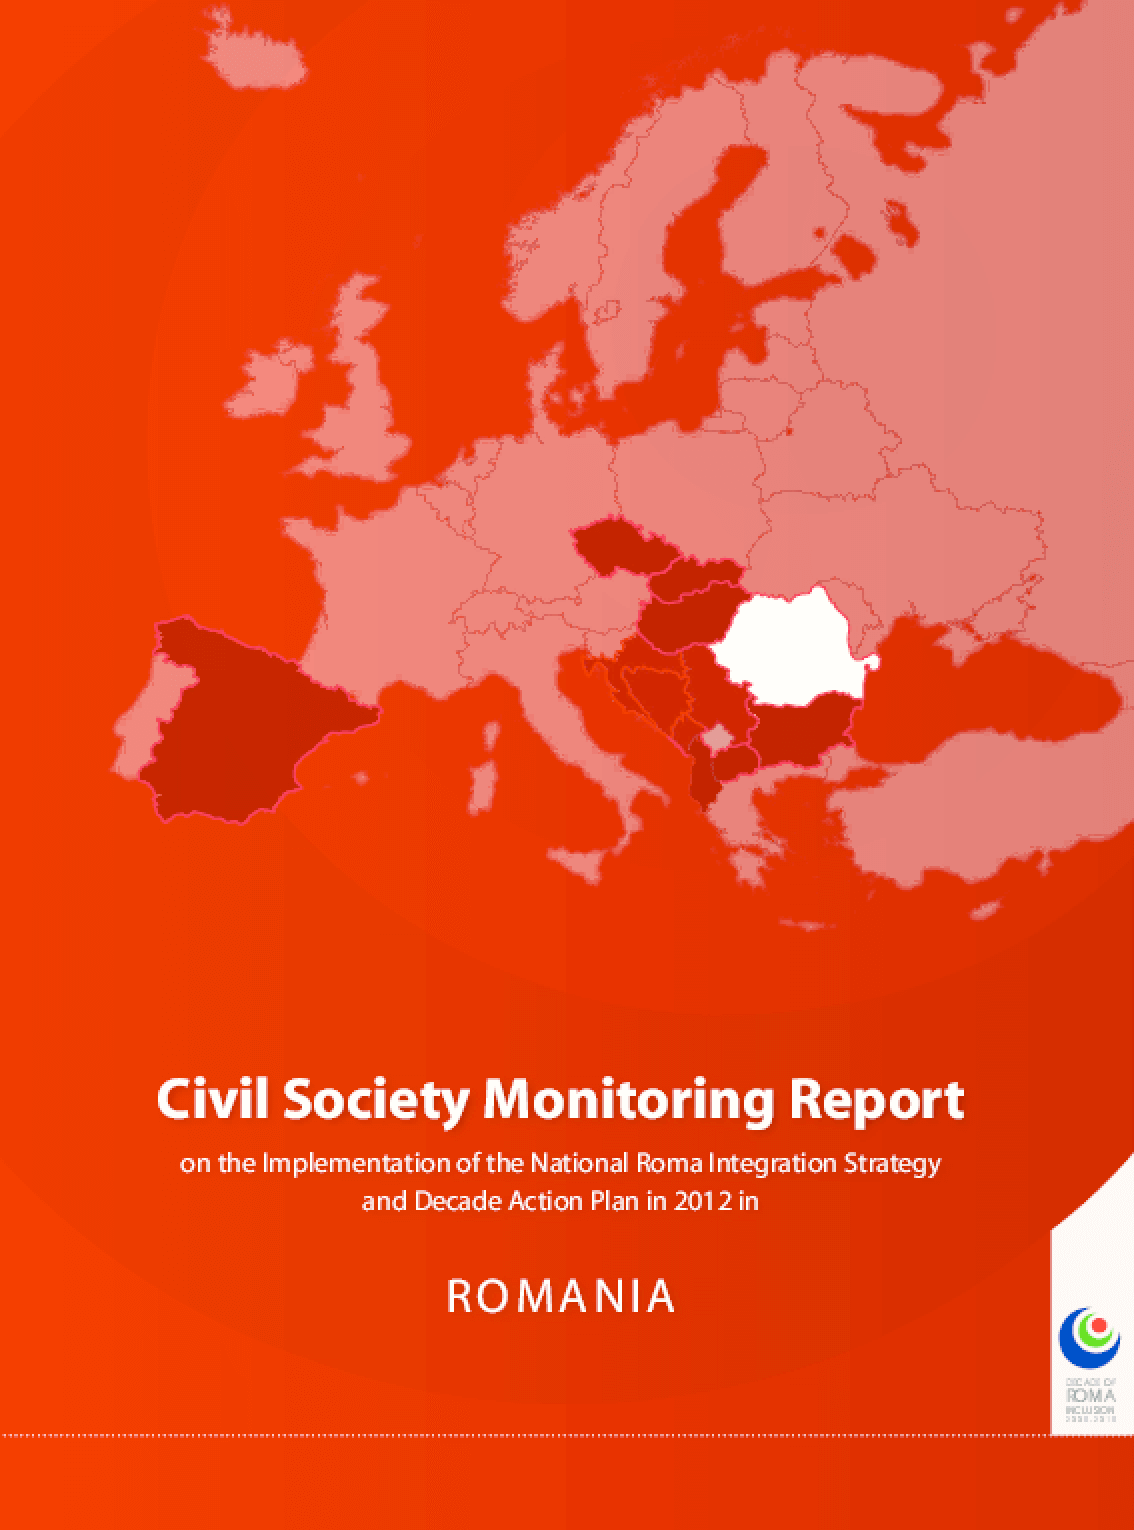 Civil Society Monitoring Report on the Implementation of the National Roma Integration Strategyon the Implementation of the National Roma Integration Strategy and Decade Action Plan in 2012 in: Romania